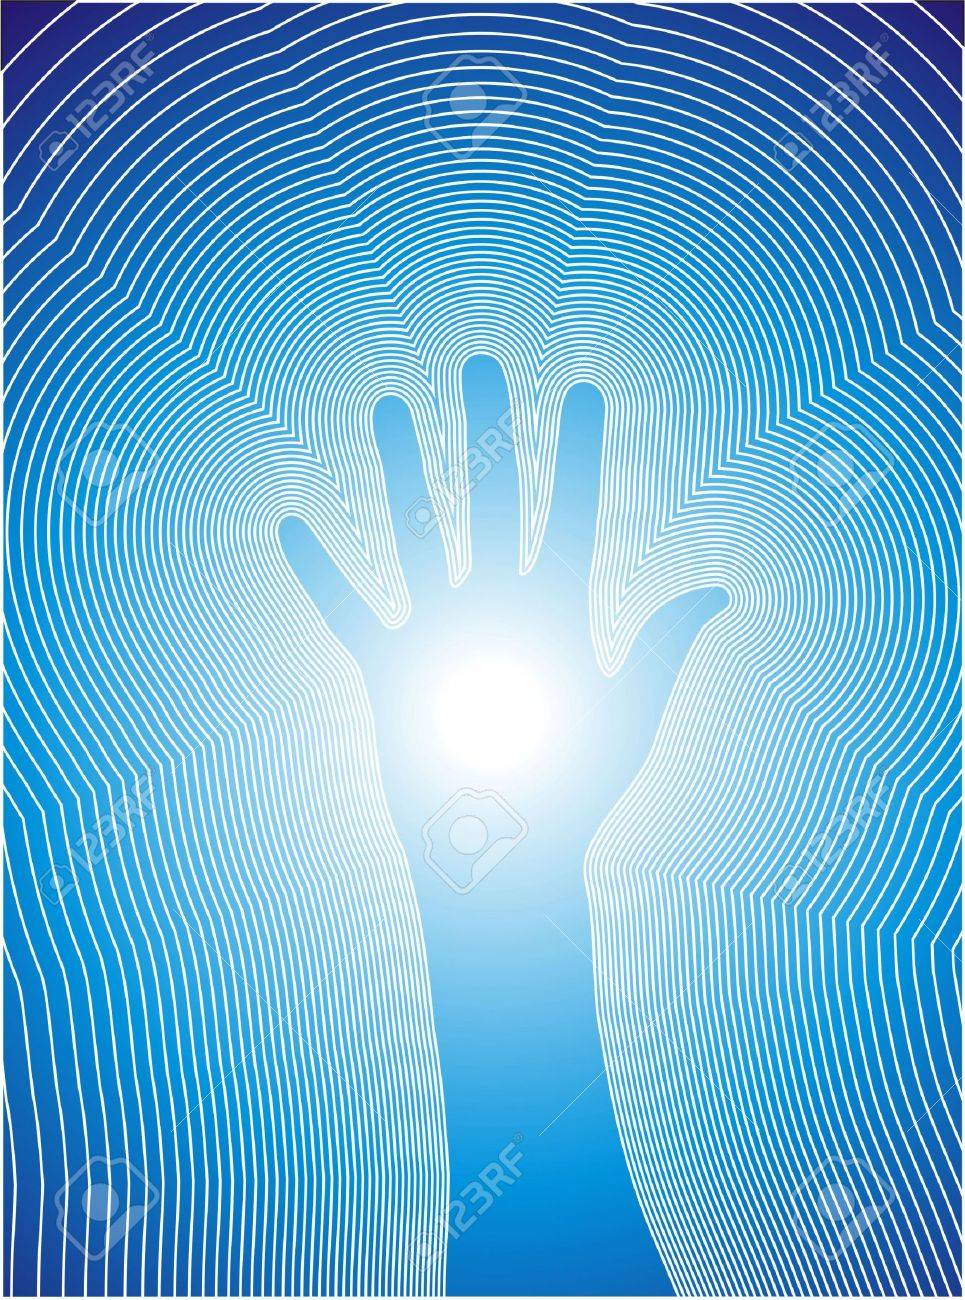 ial illustration of a hand and the reiki line. Stock Photo - 4763220